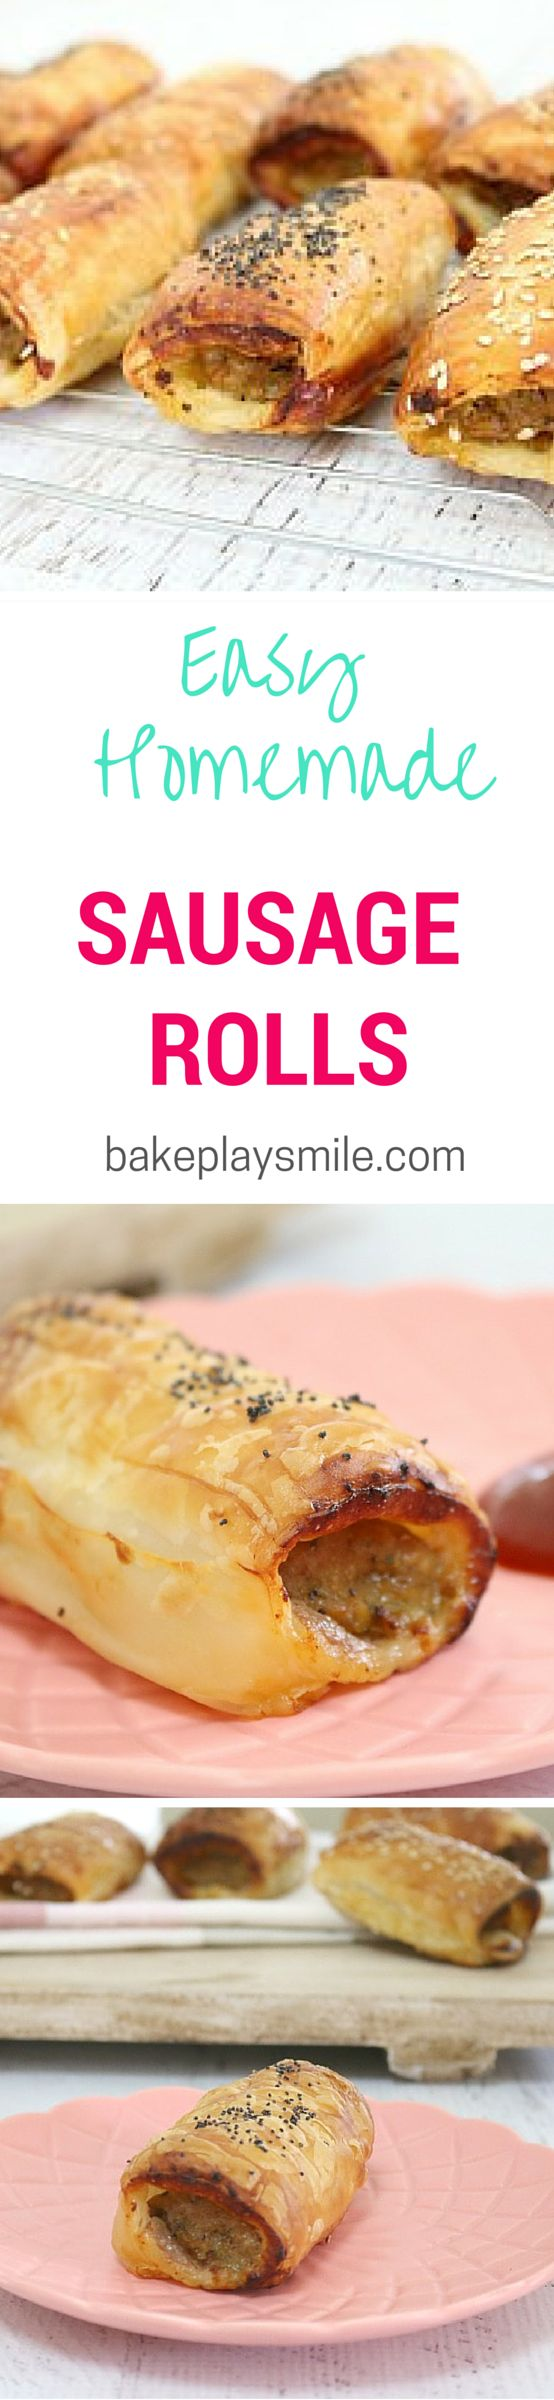 This is hands-down the best sausage roll recipe I've ever made. It's so easy! I…                                                                                                                                                                                 More